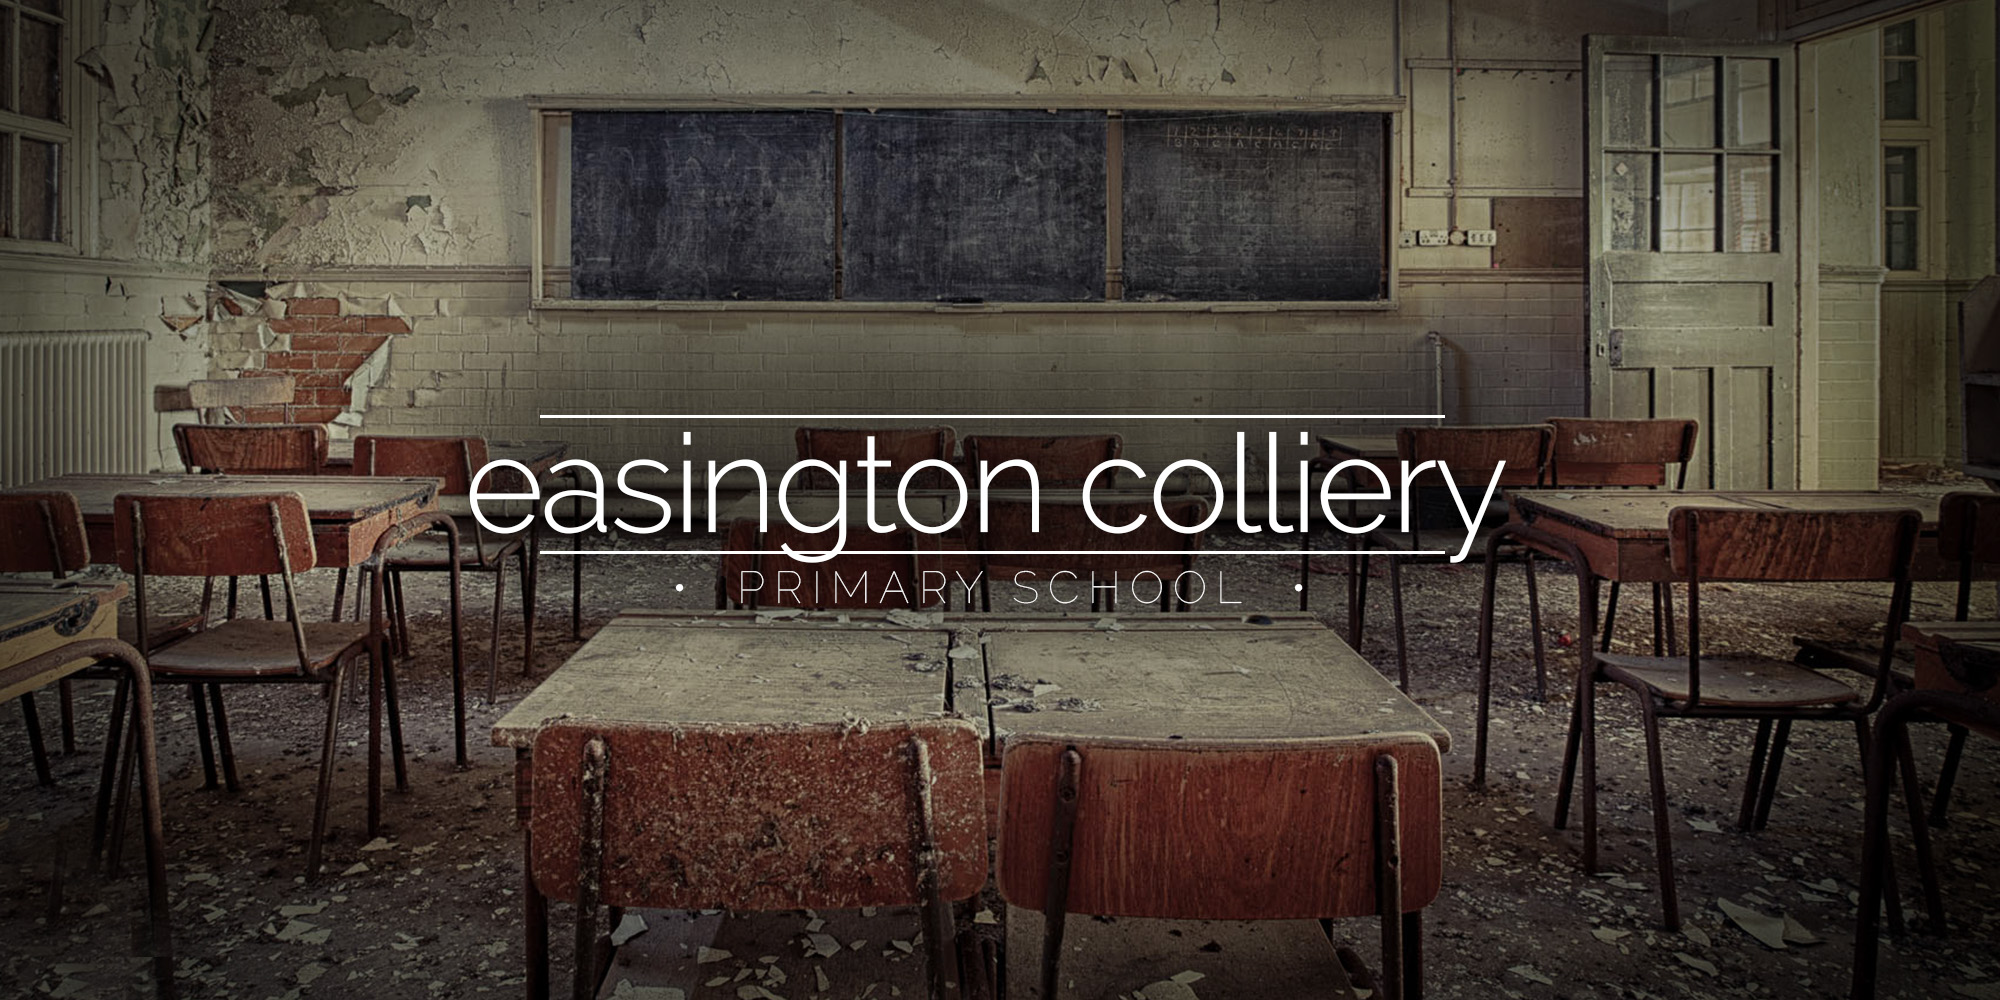 Easington Colliery Primary School, Durham